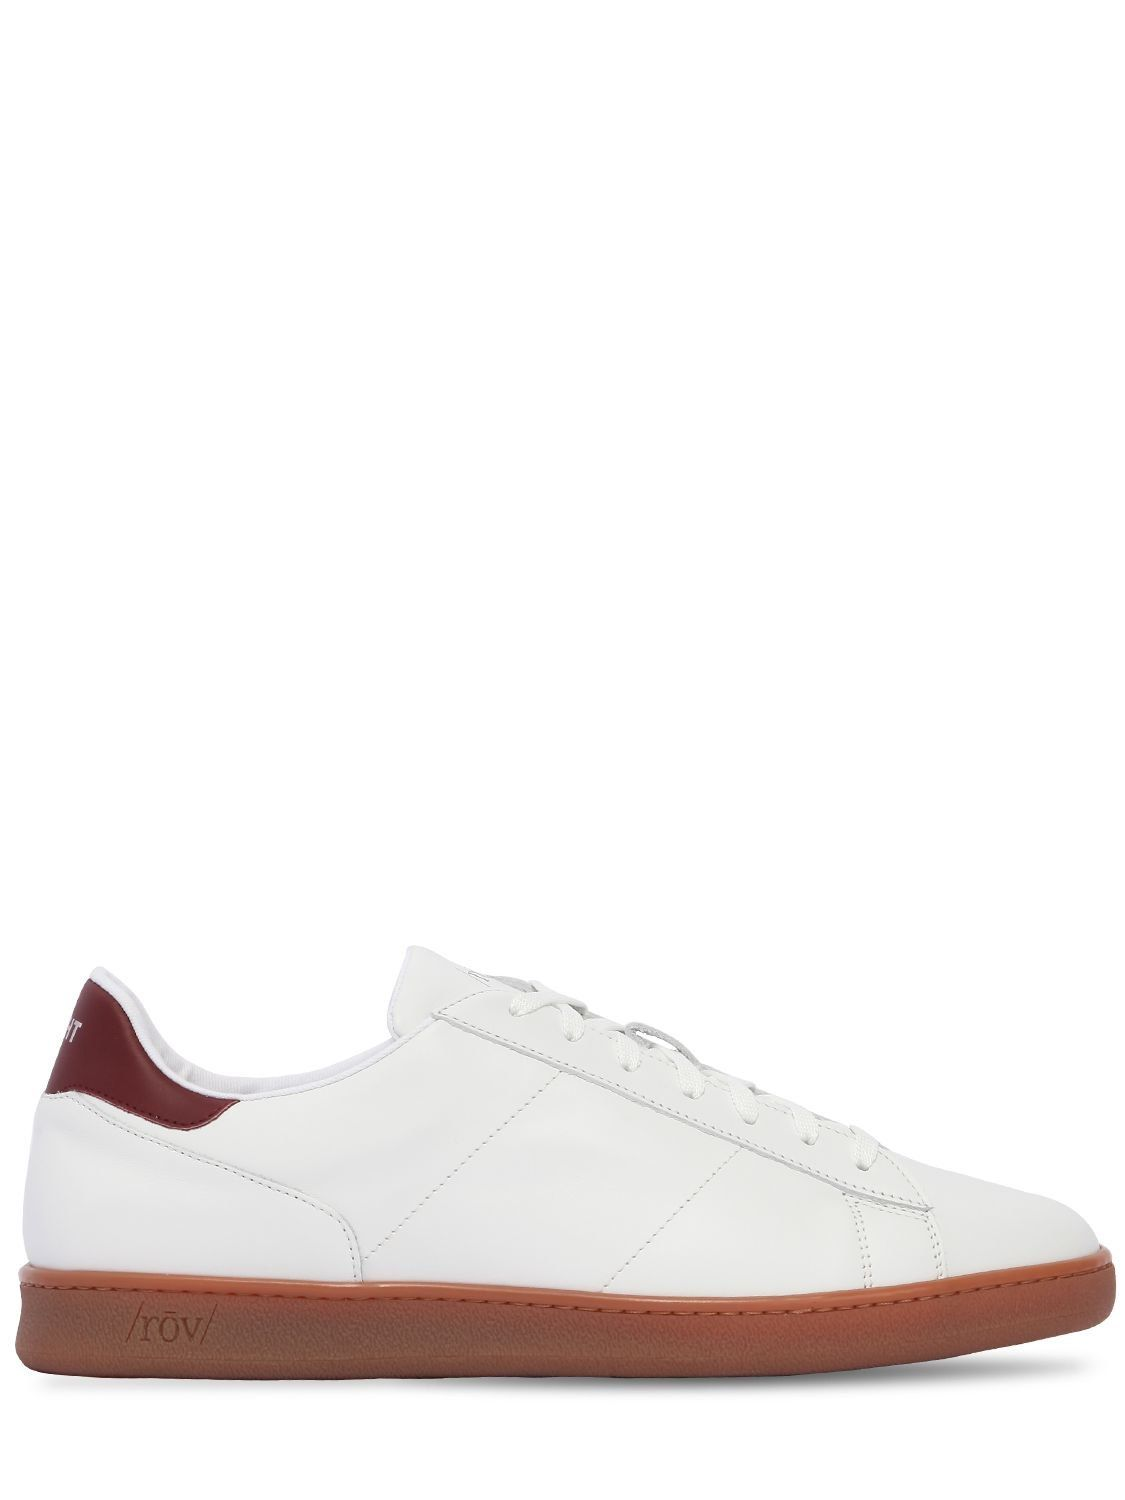 ROV LEATHER SOLE SNEAKERS CZ9c55h